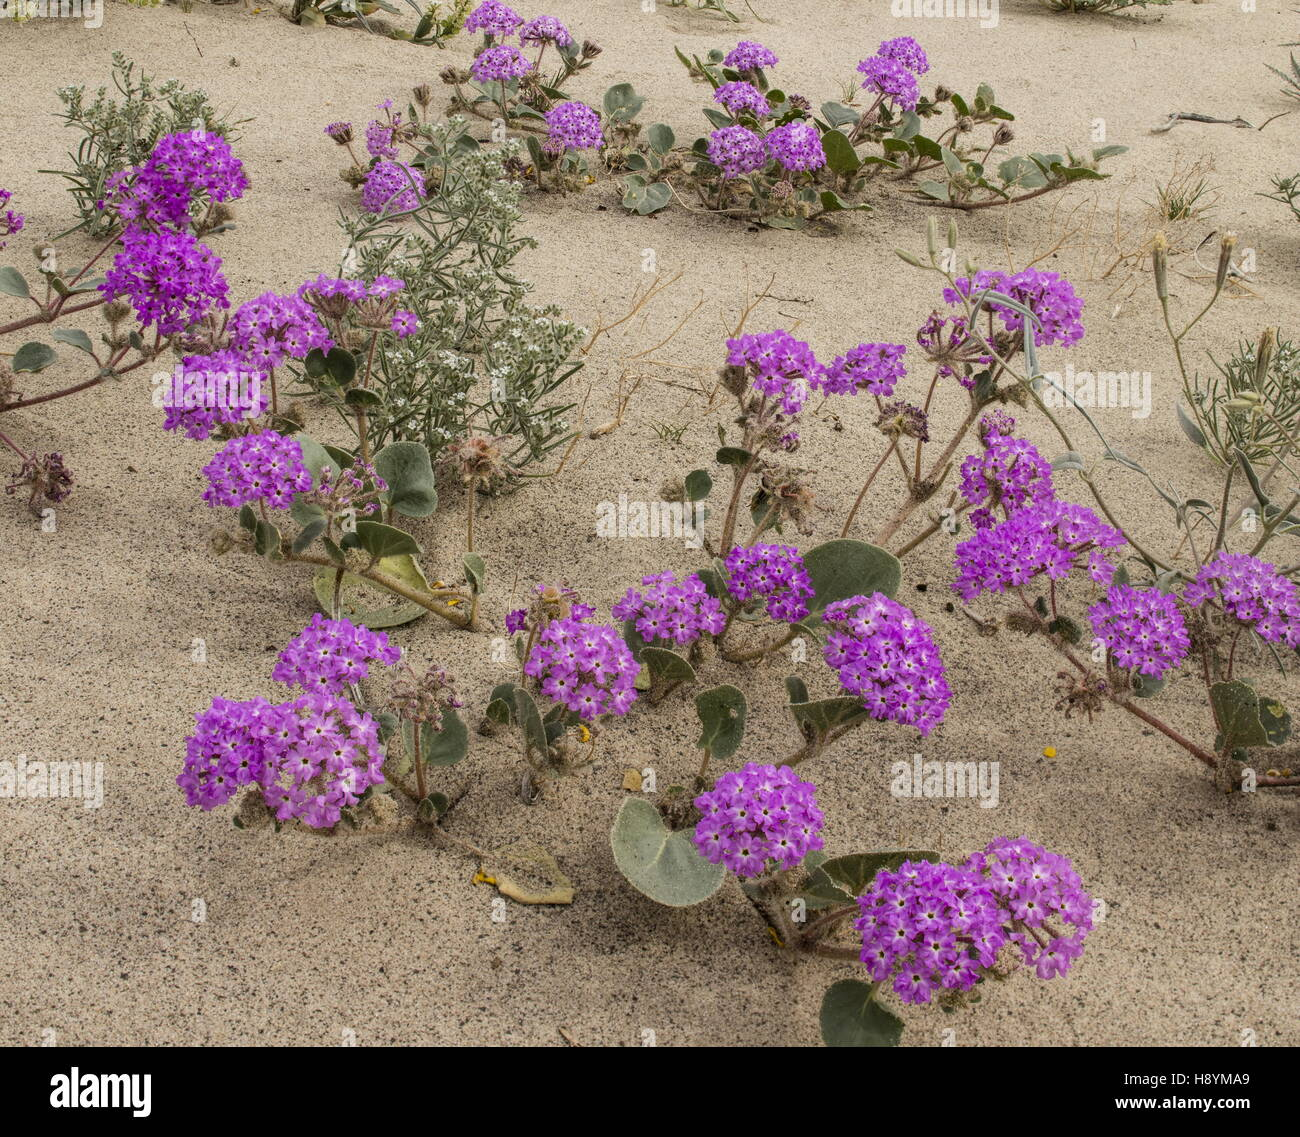 Flowery sand-dunes with Sand Verbena, Abronia villosa and in flower in Anza-Borrego, Sonoran desert, Calif - Stock Image